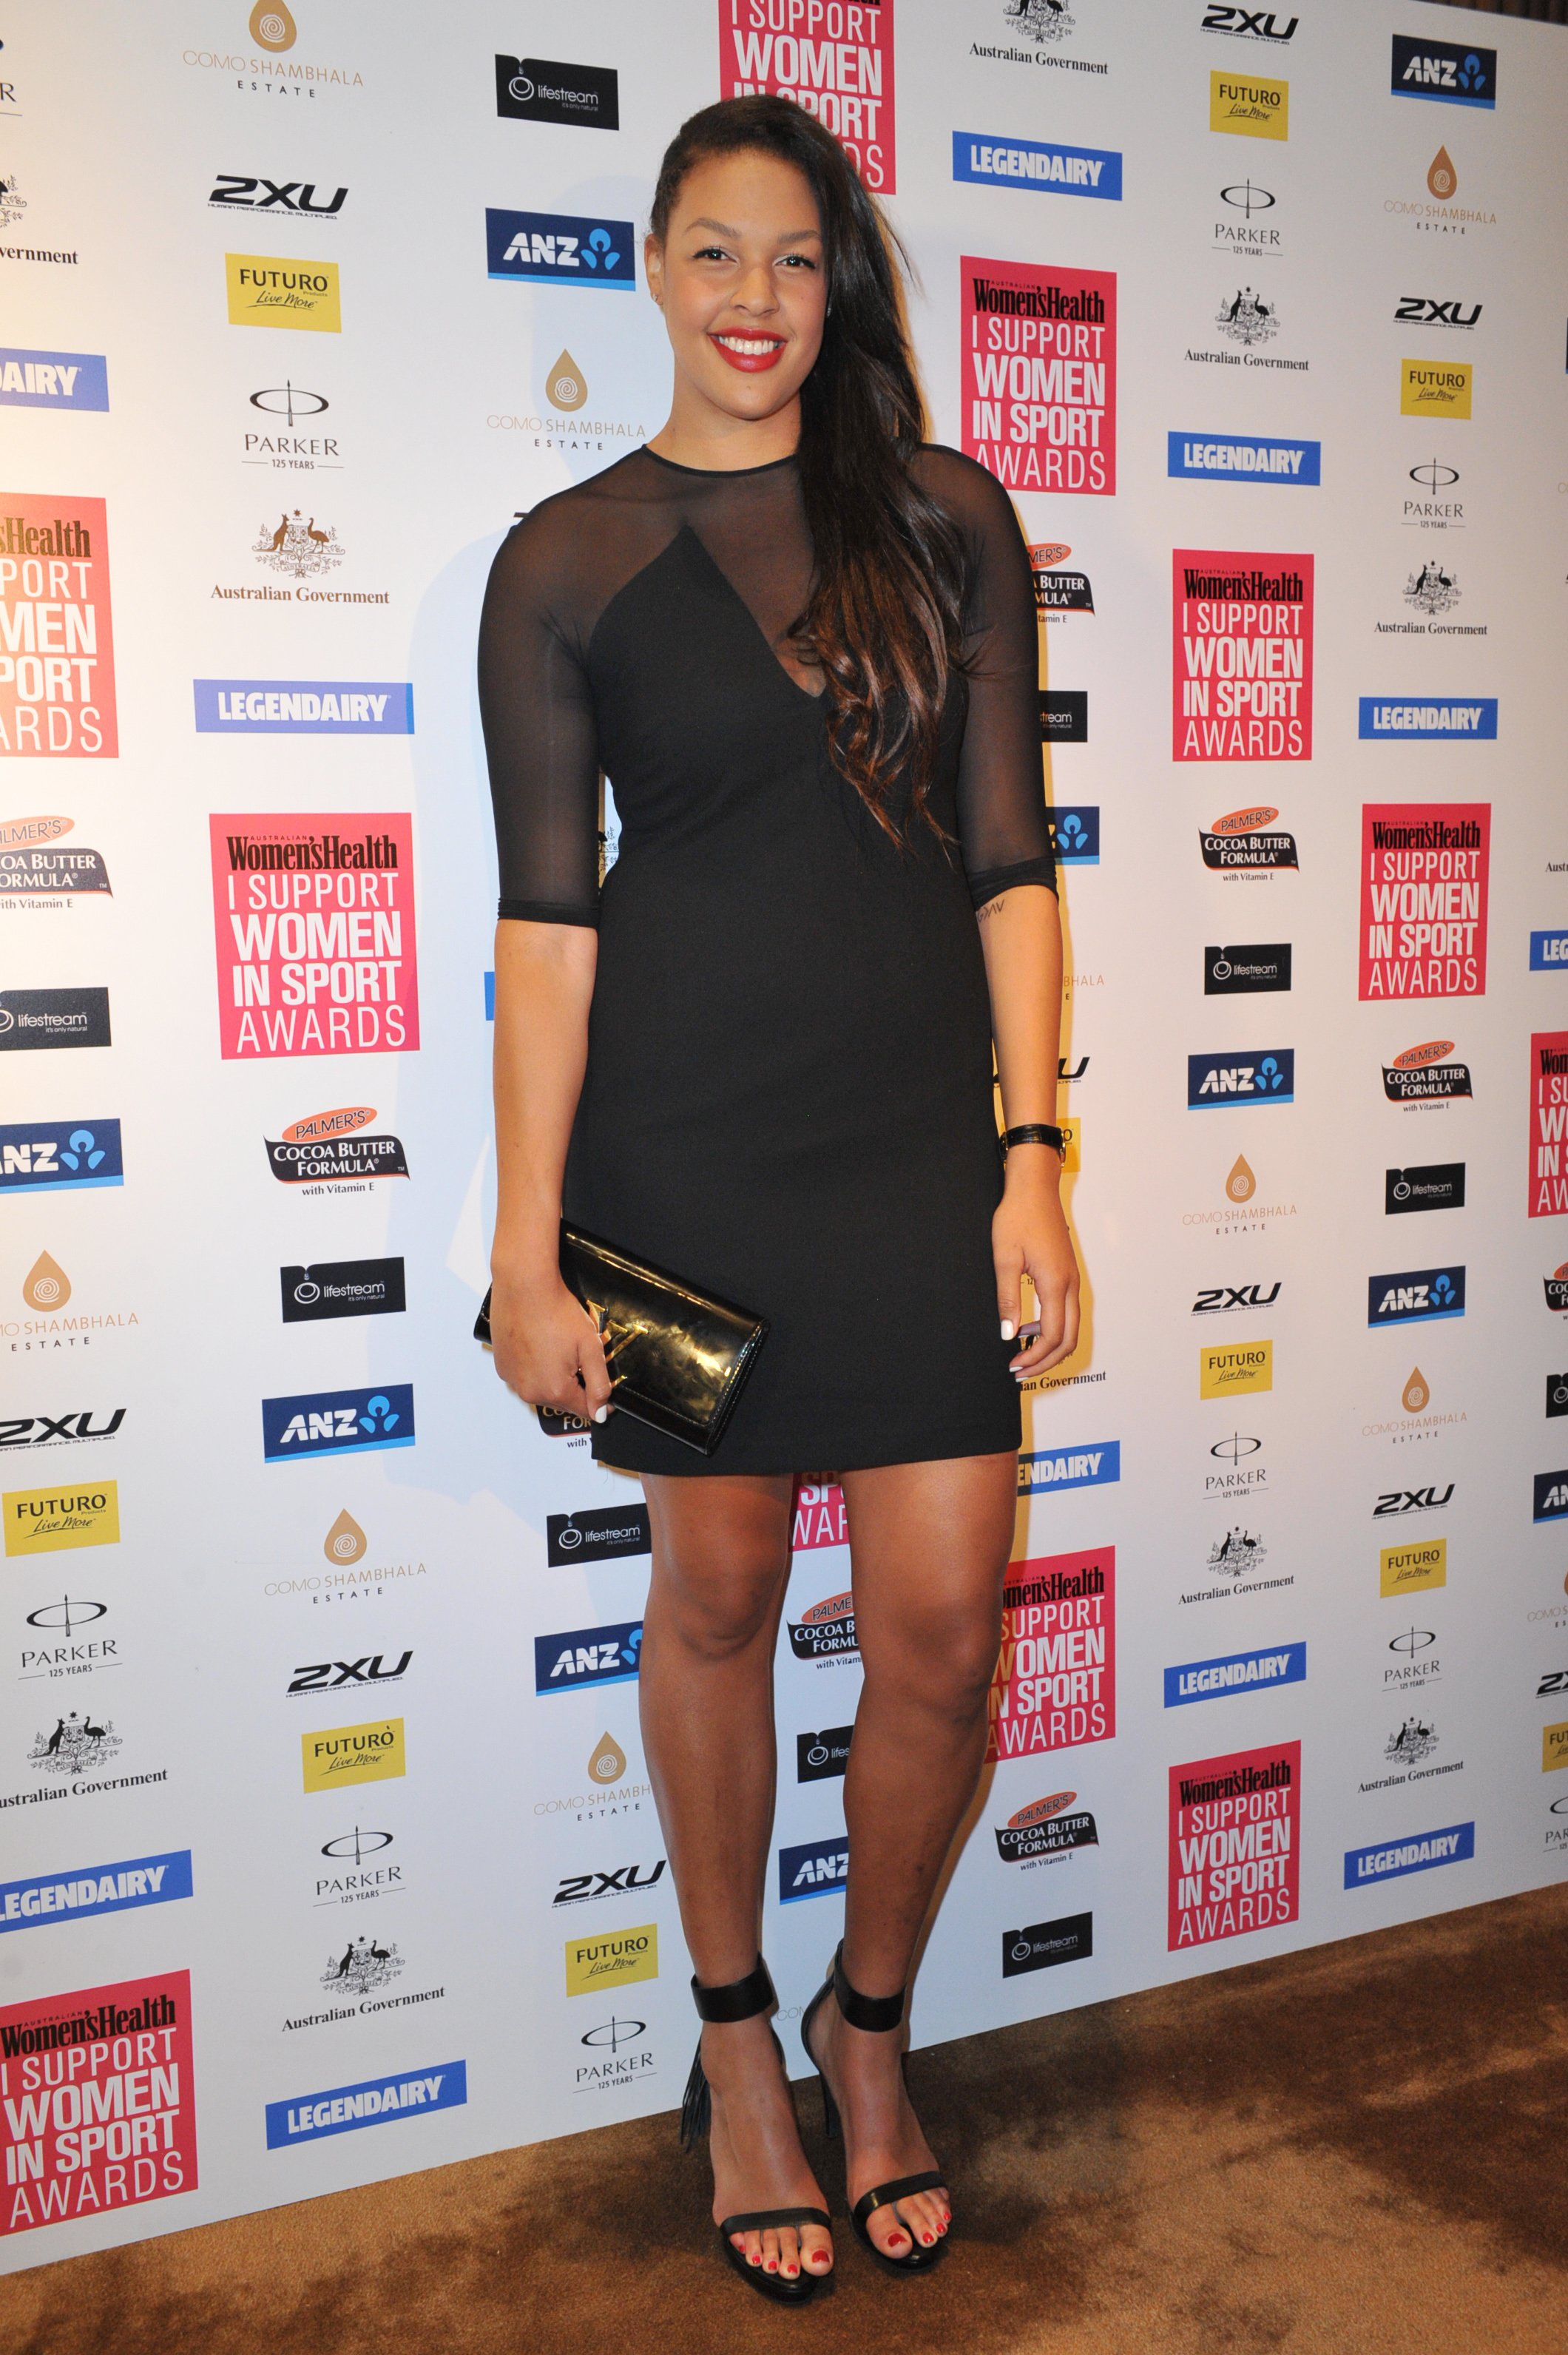 Liz At The I Support Women In Sport Awards